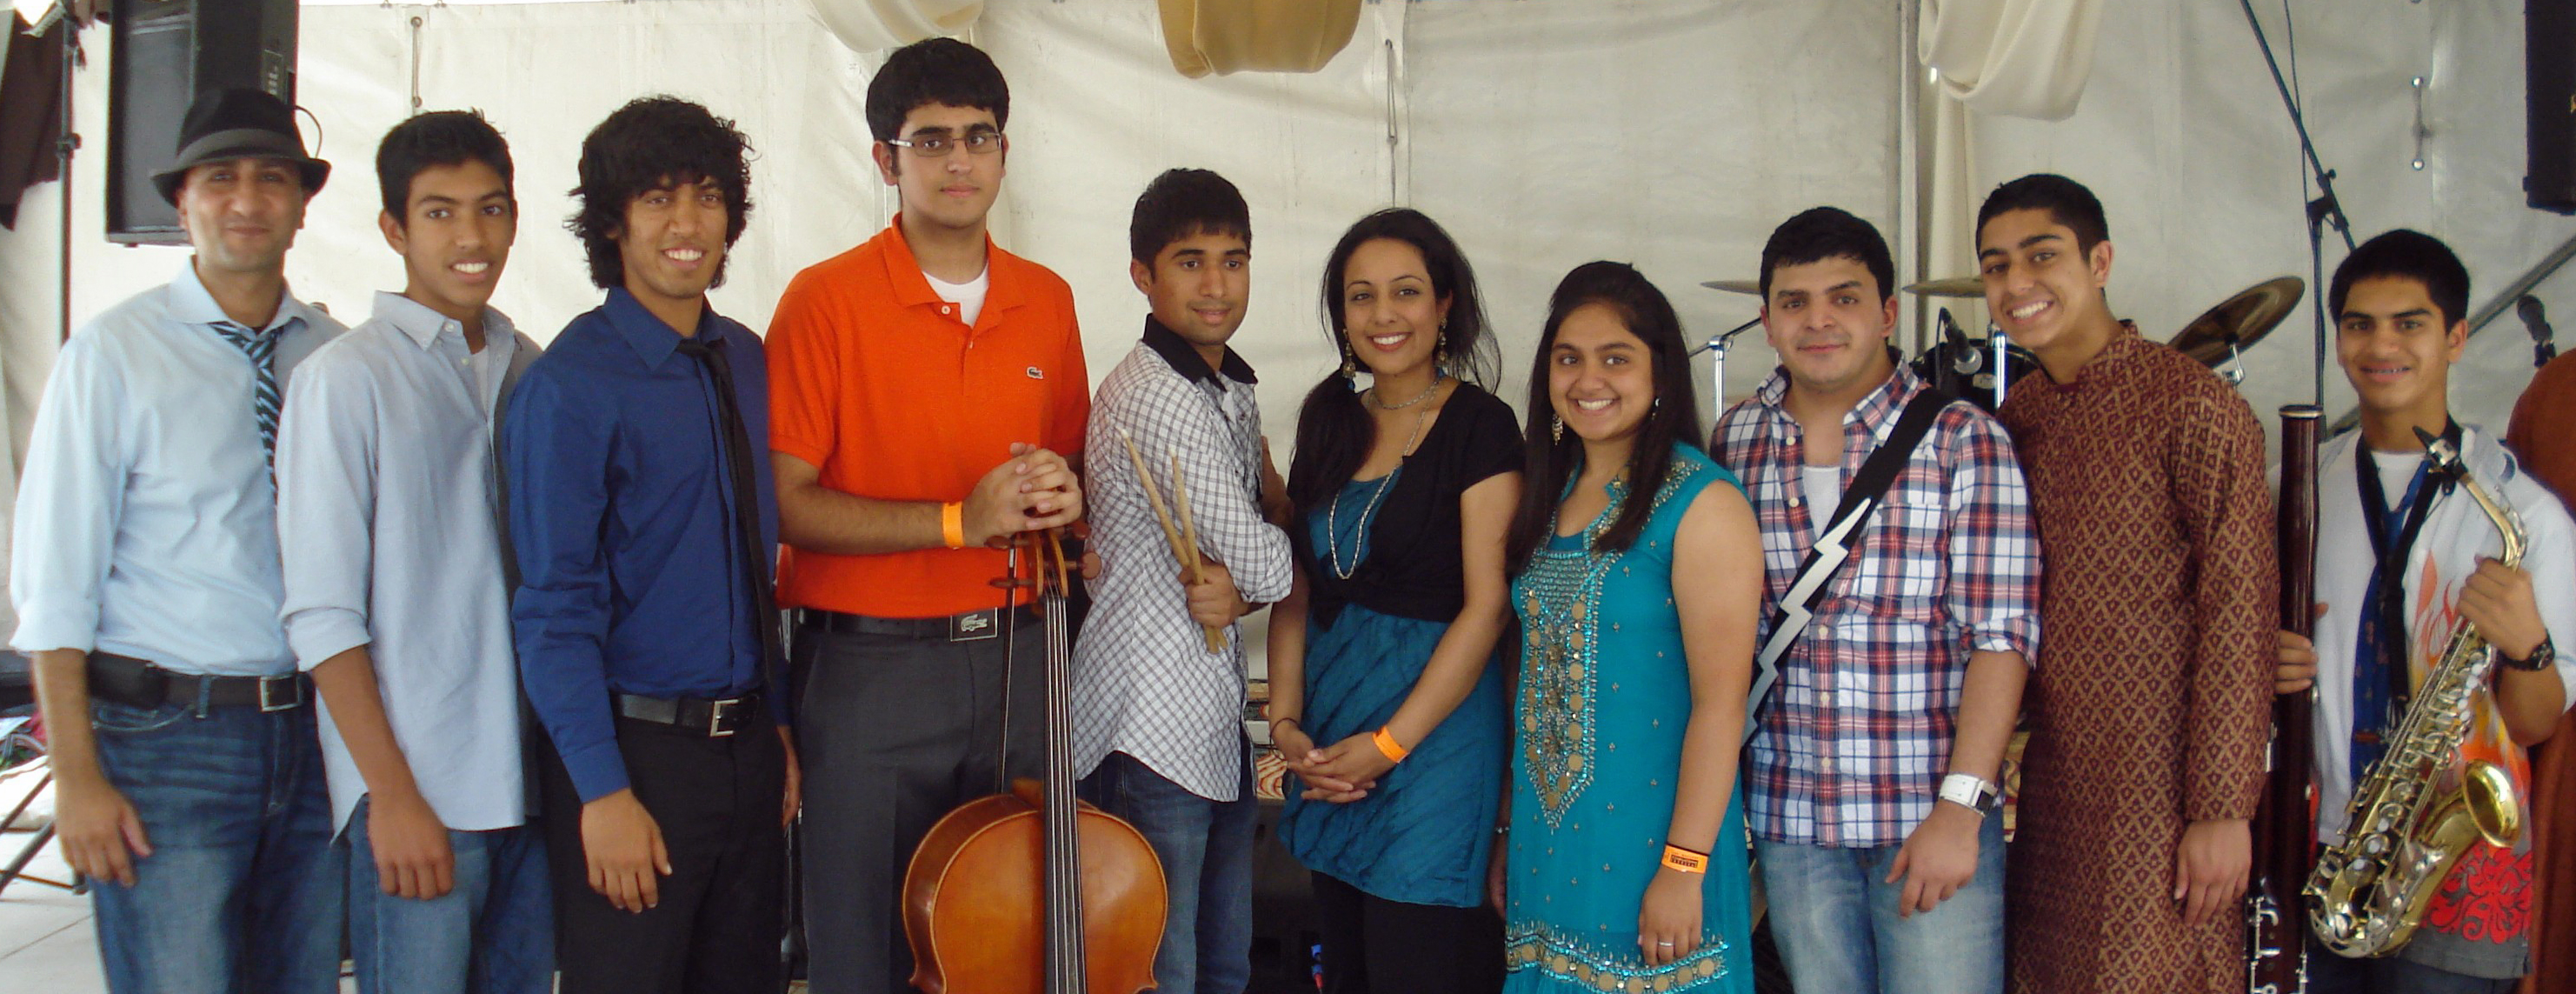 Members of the Ismaili Musical Ensemble pose for a group photograph following their performance at the Houston International Festival earlier in 2011. Photo: Sohil Maknojia